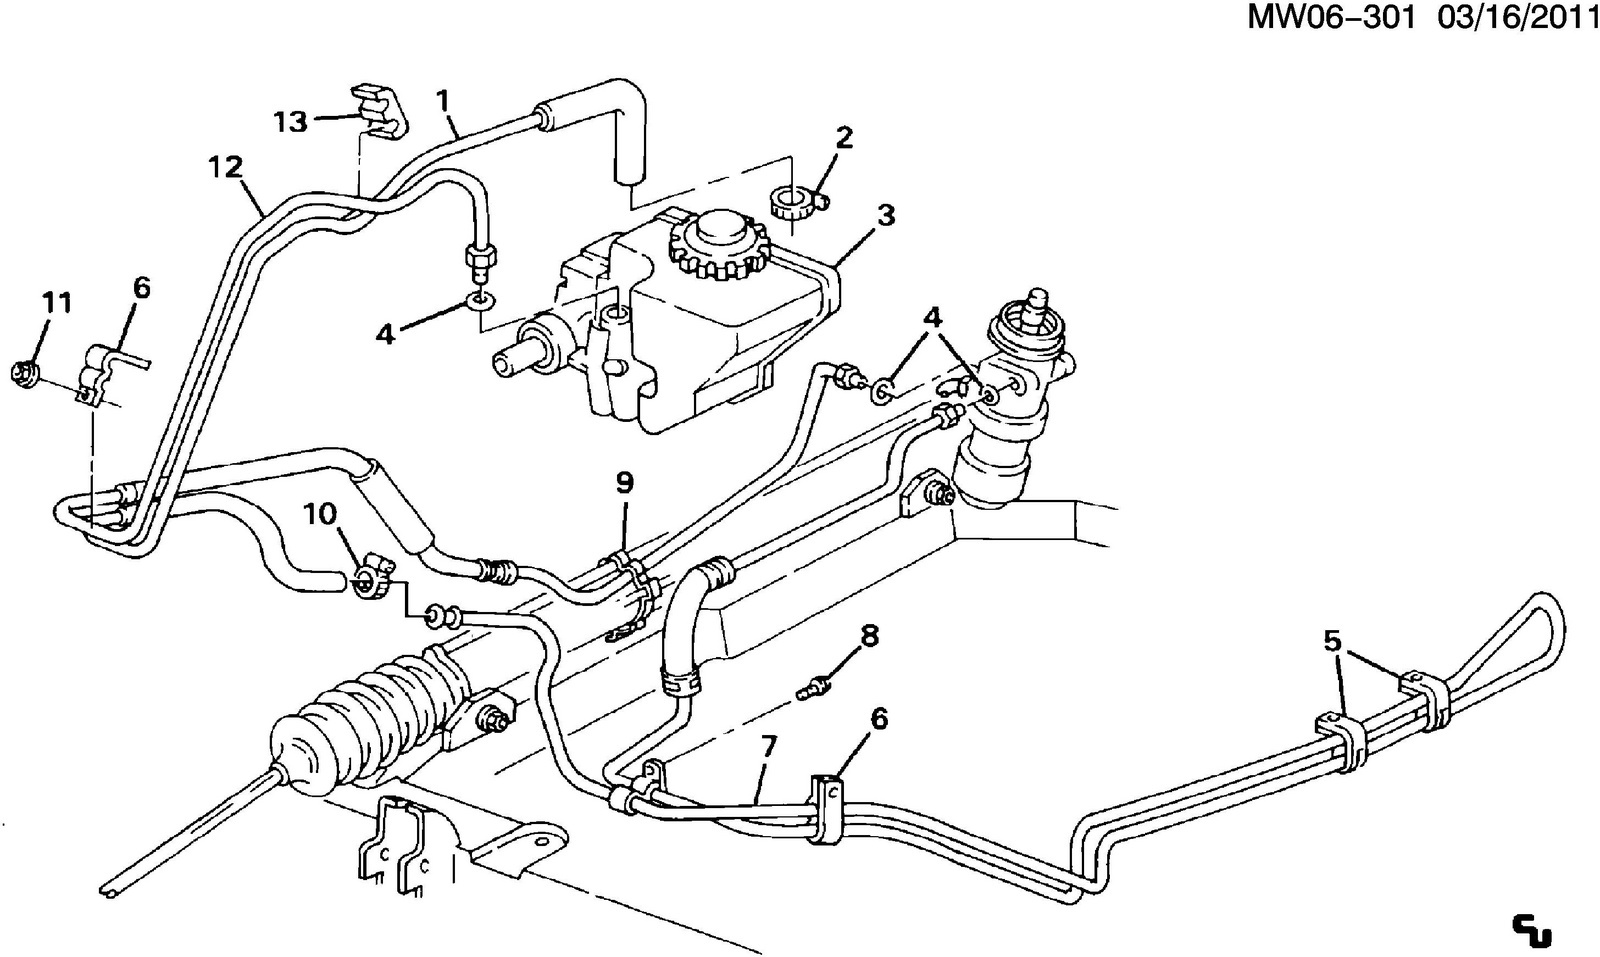 Discussion T16816_ds577757 on Buick Lesabre Power Steering